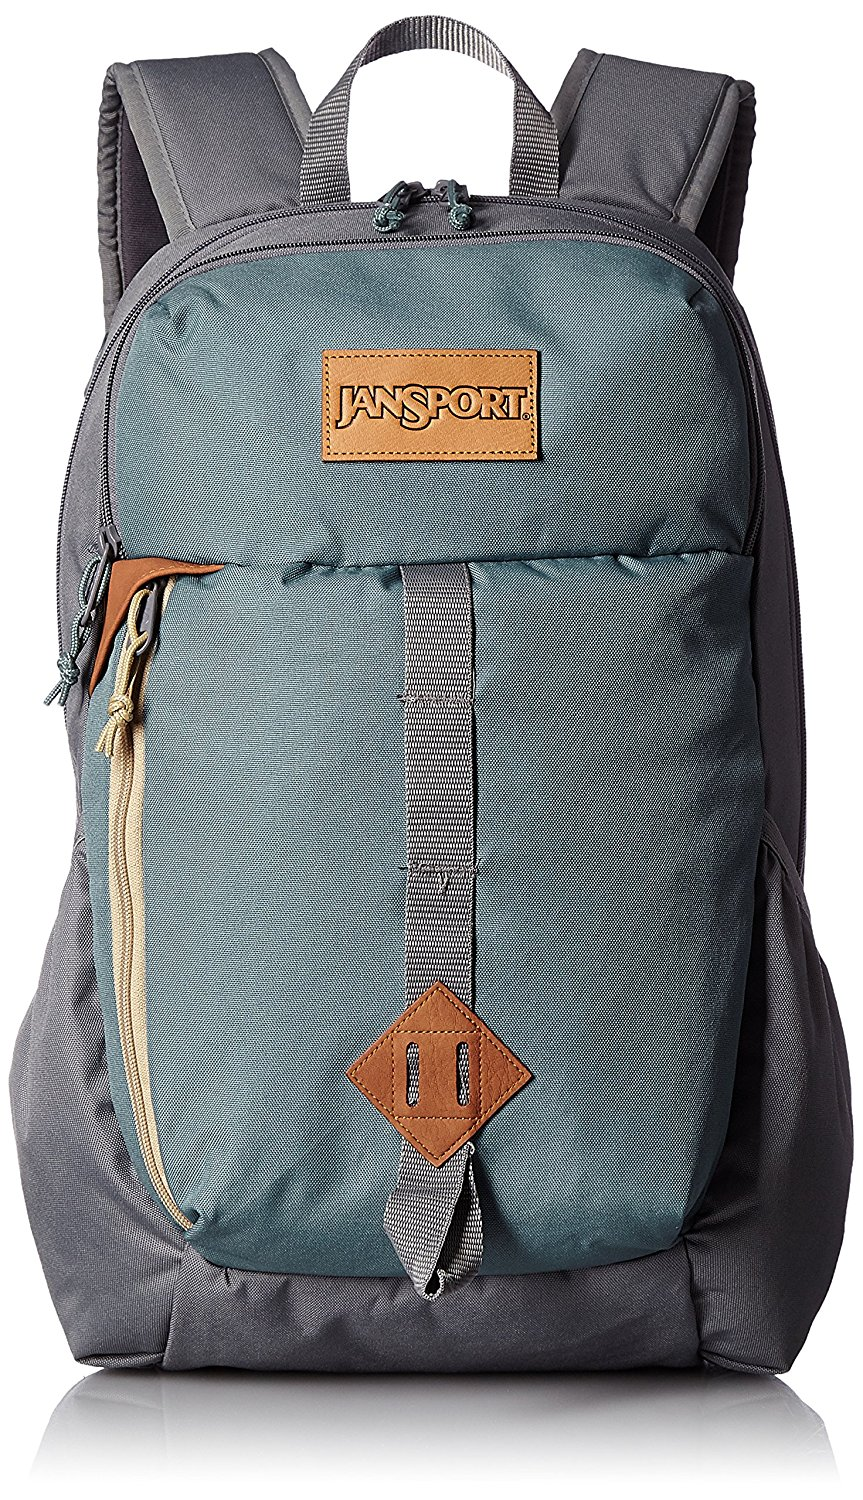 Jansport Galaxy Backpack Price Philippines- Fenix Toulouse Handball 948d6438f08b5